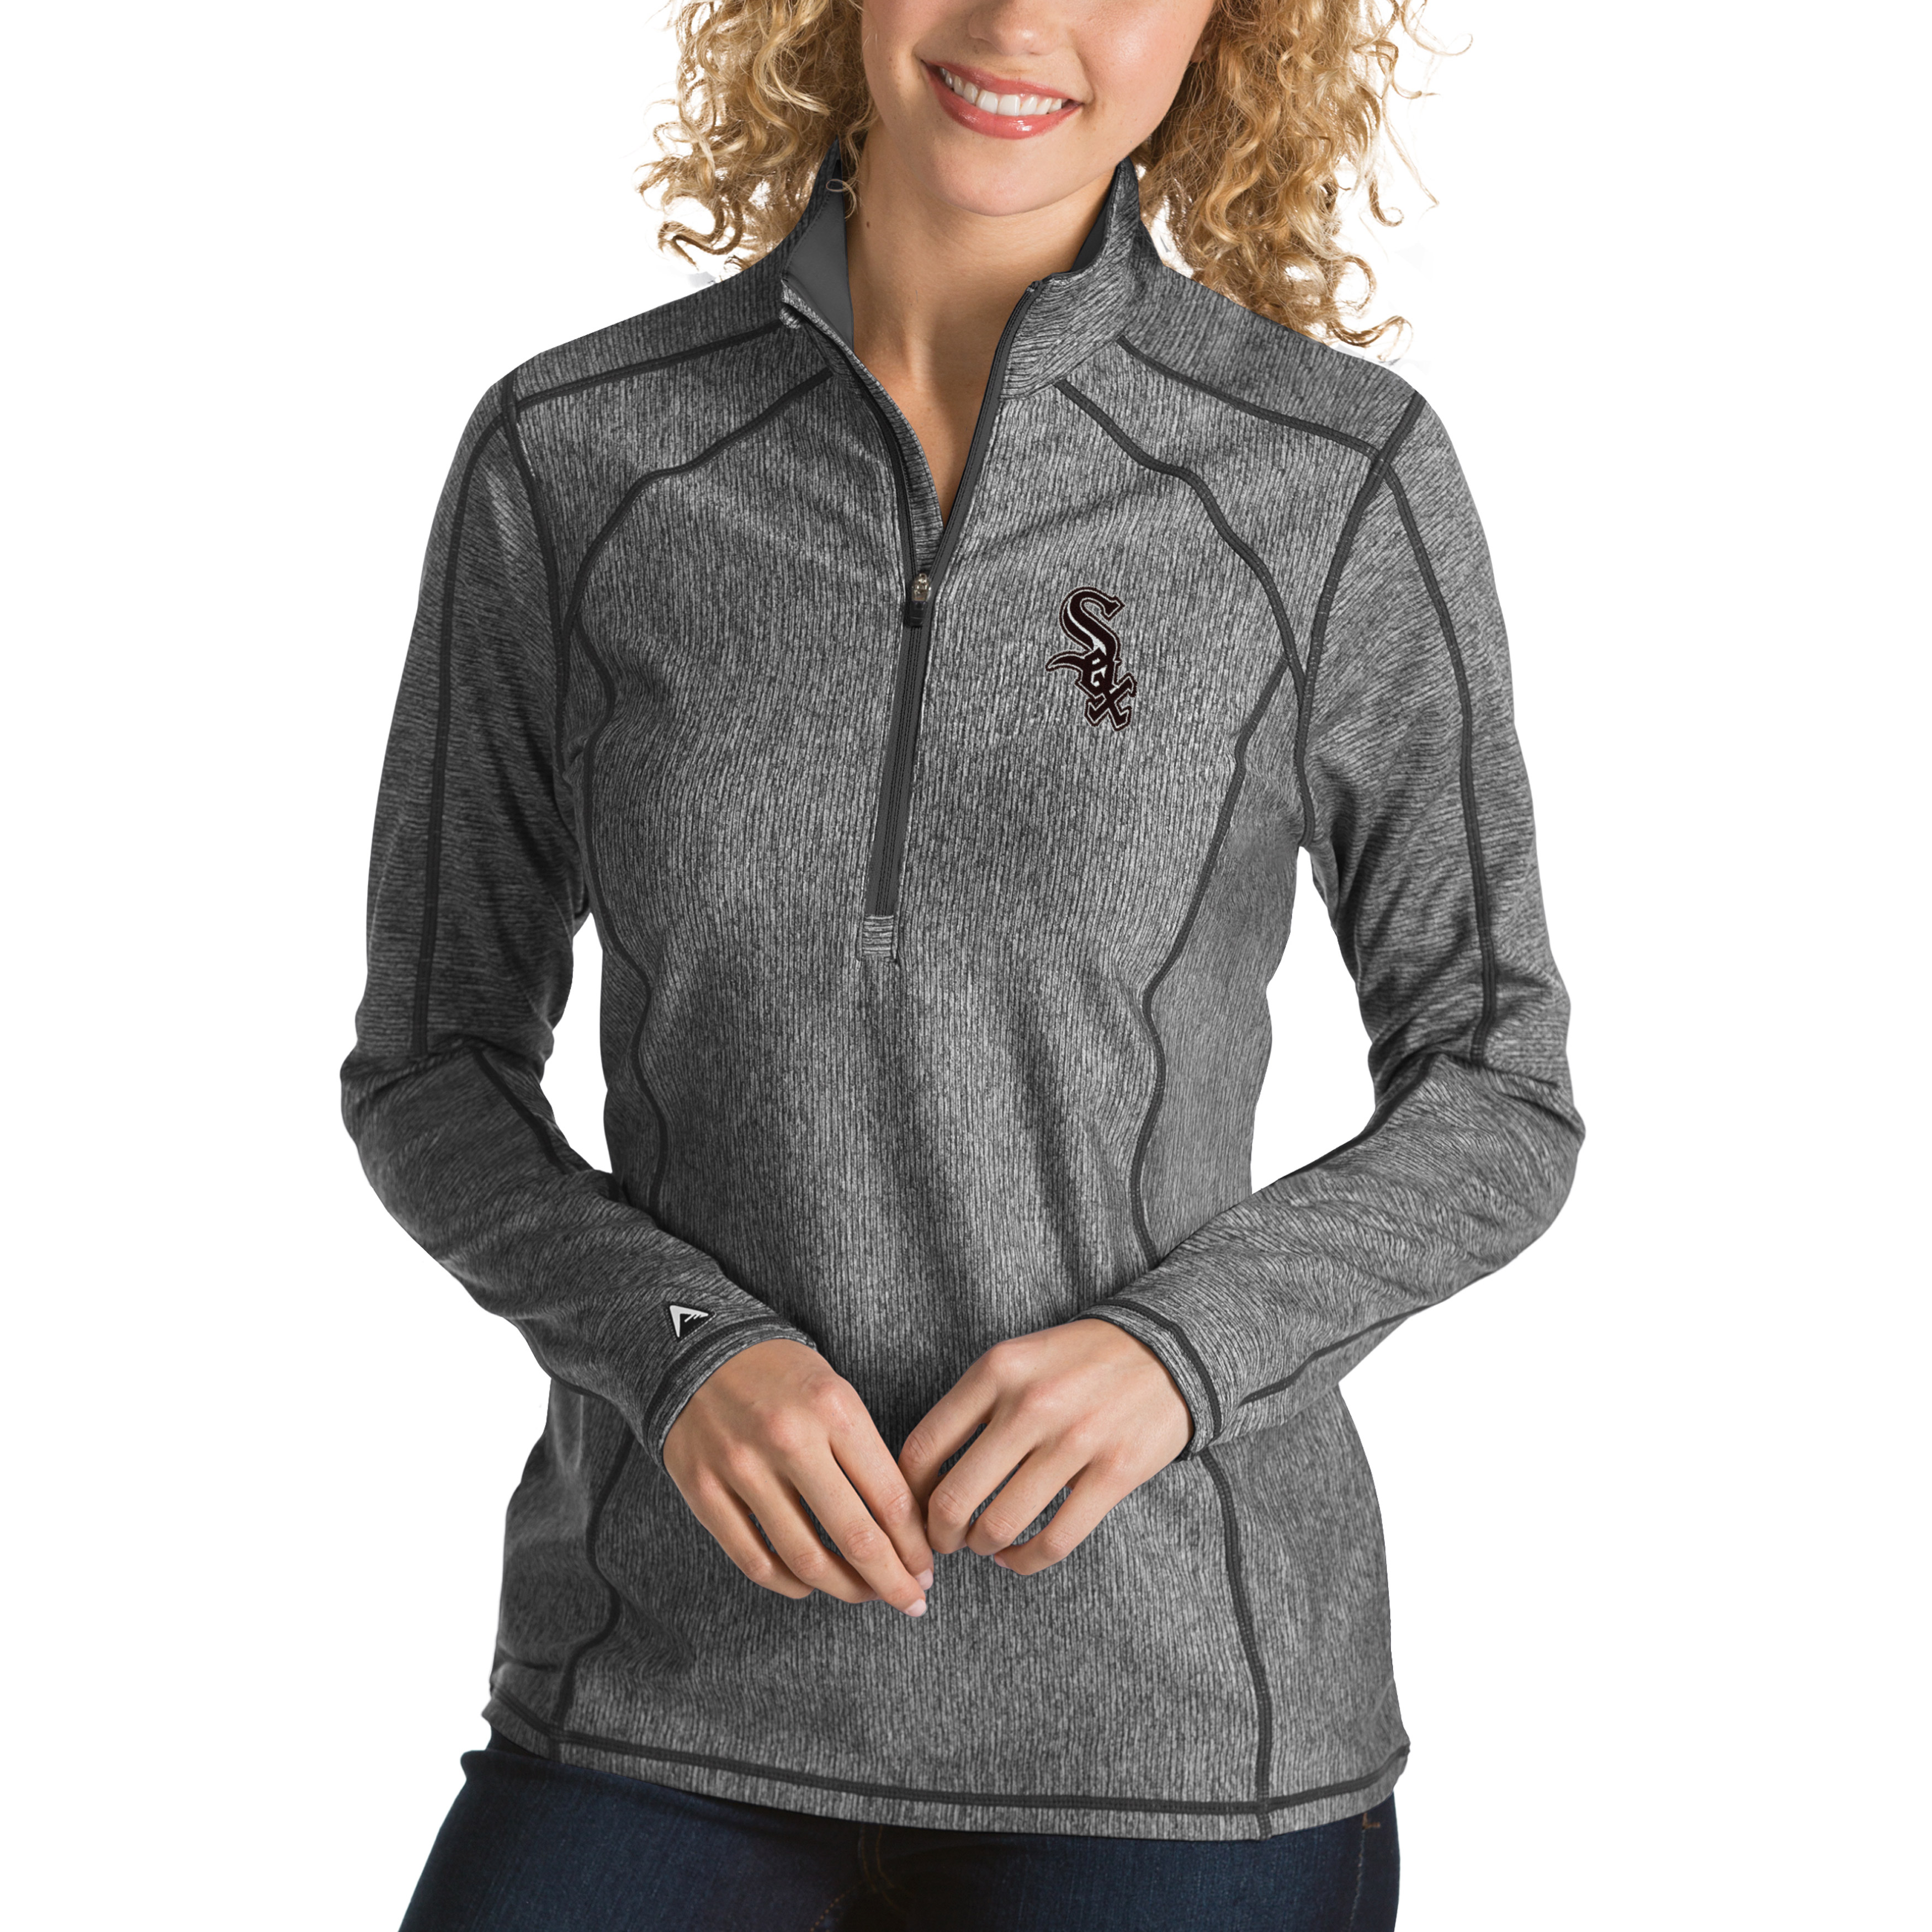 Chicago White Sox Antigua Women's Tempo Desert Dry 1/4-Zip Pullover Jacket - Heathered Charcoal